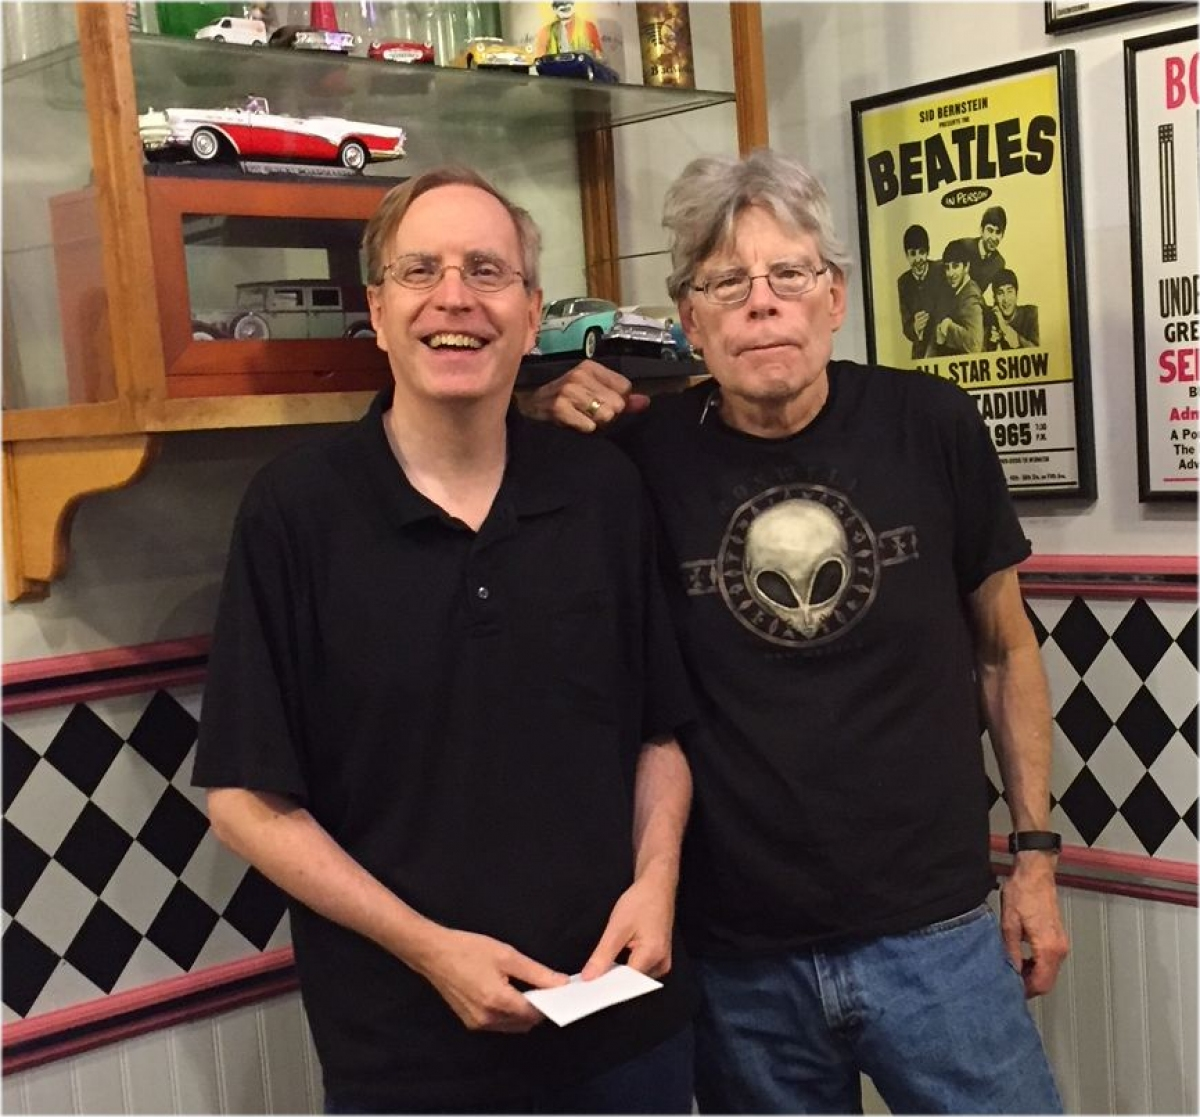 Bev Vincent i Stephen King w Nicky's Cruisin' Diner (foto: Richard Chizmar) - obrazek